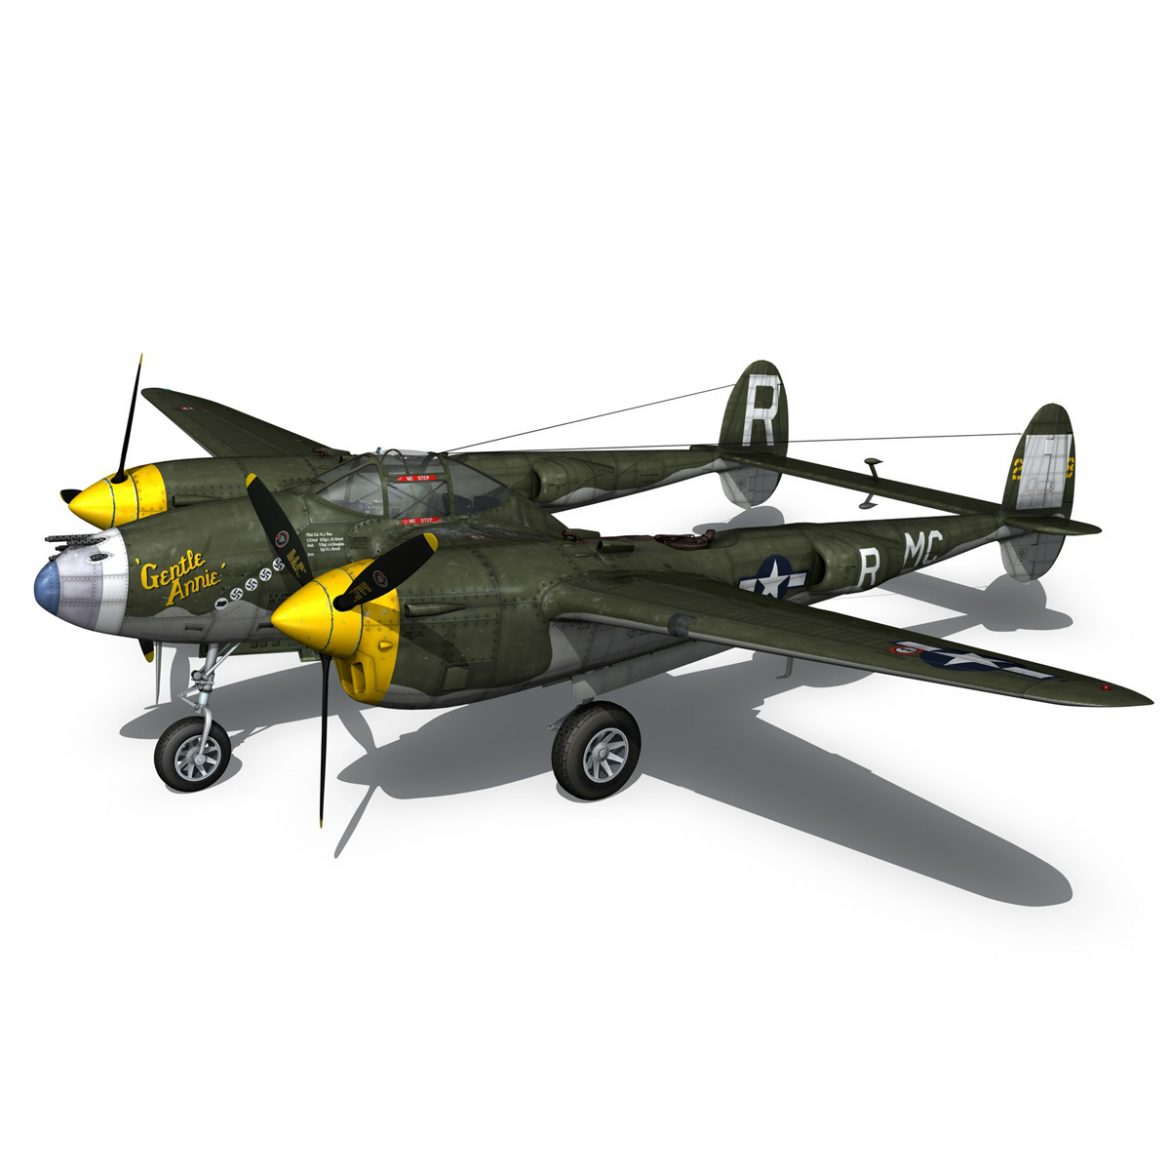 lockheed p-38 lightning – gentle annie 3d model fbx c4d lwo obj 300089